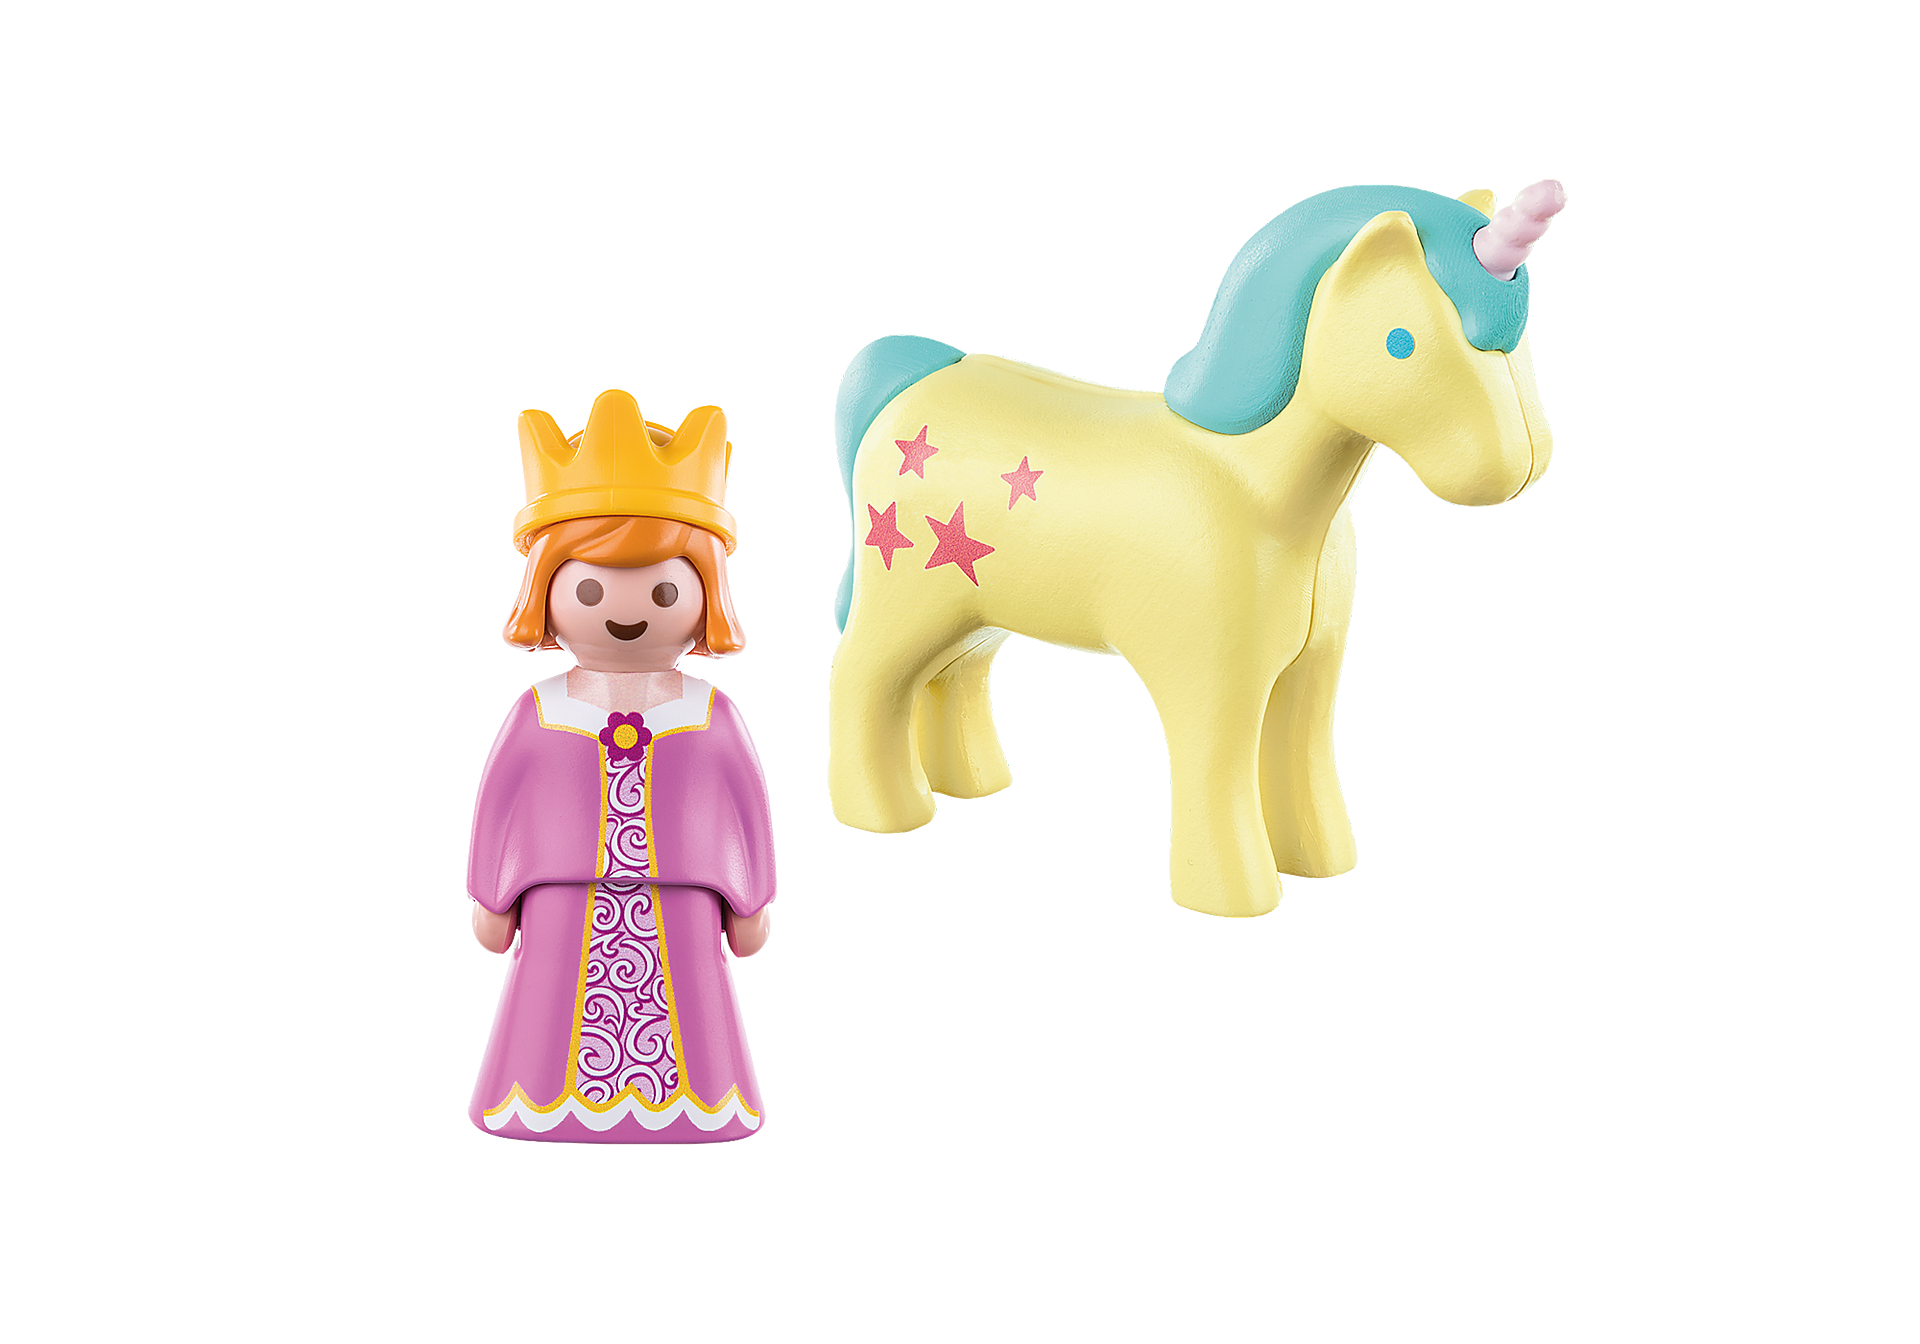 70127 Princess with Unicorn zoom image3